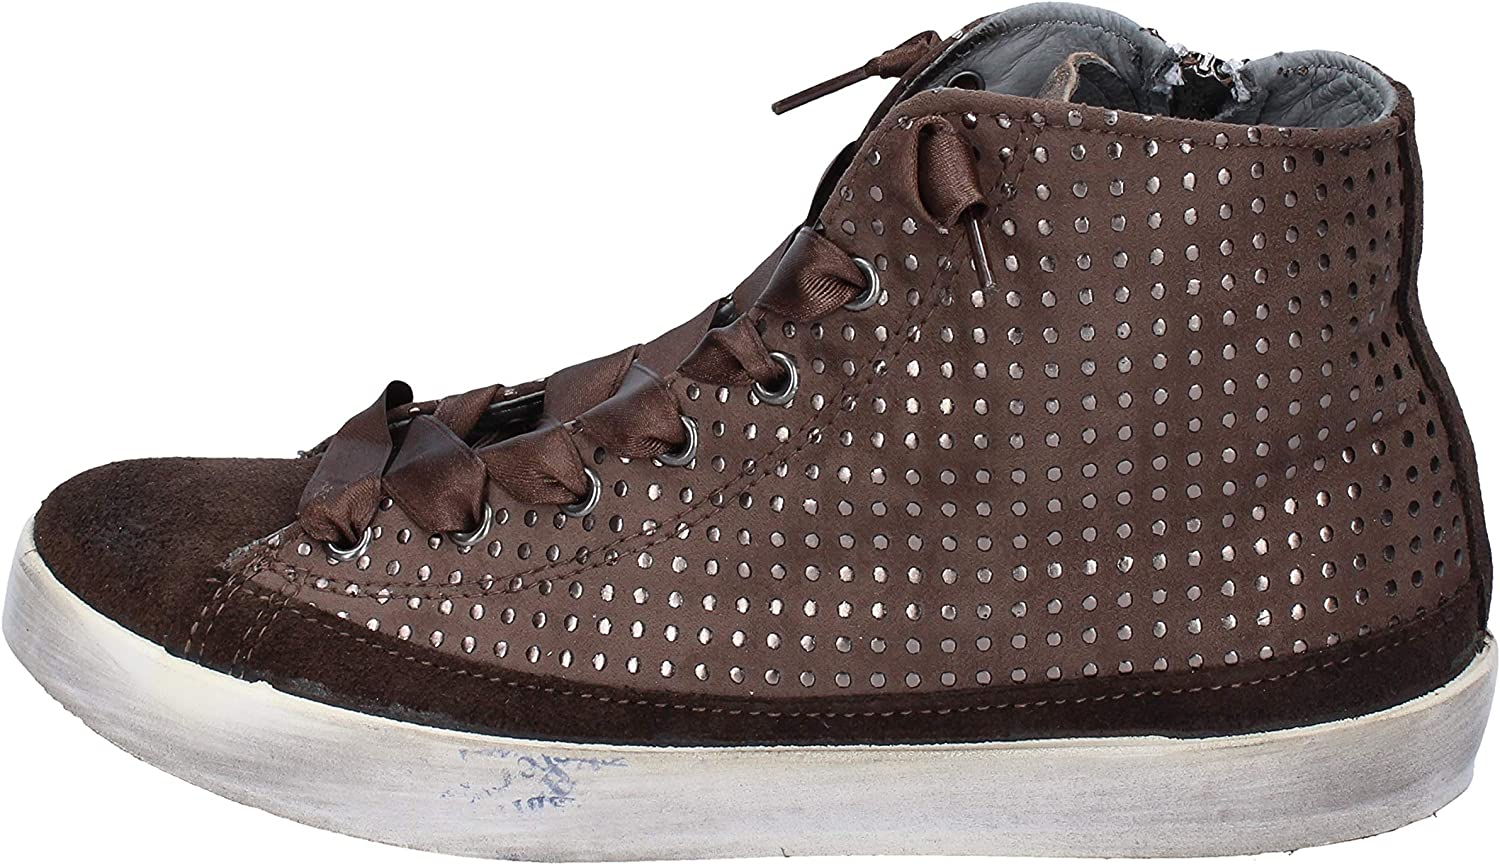 Beverly Hills Polo Club Fashion-Sneakers Womens Suede Brown